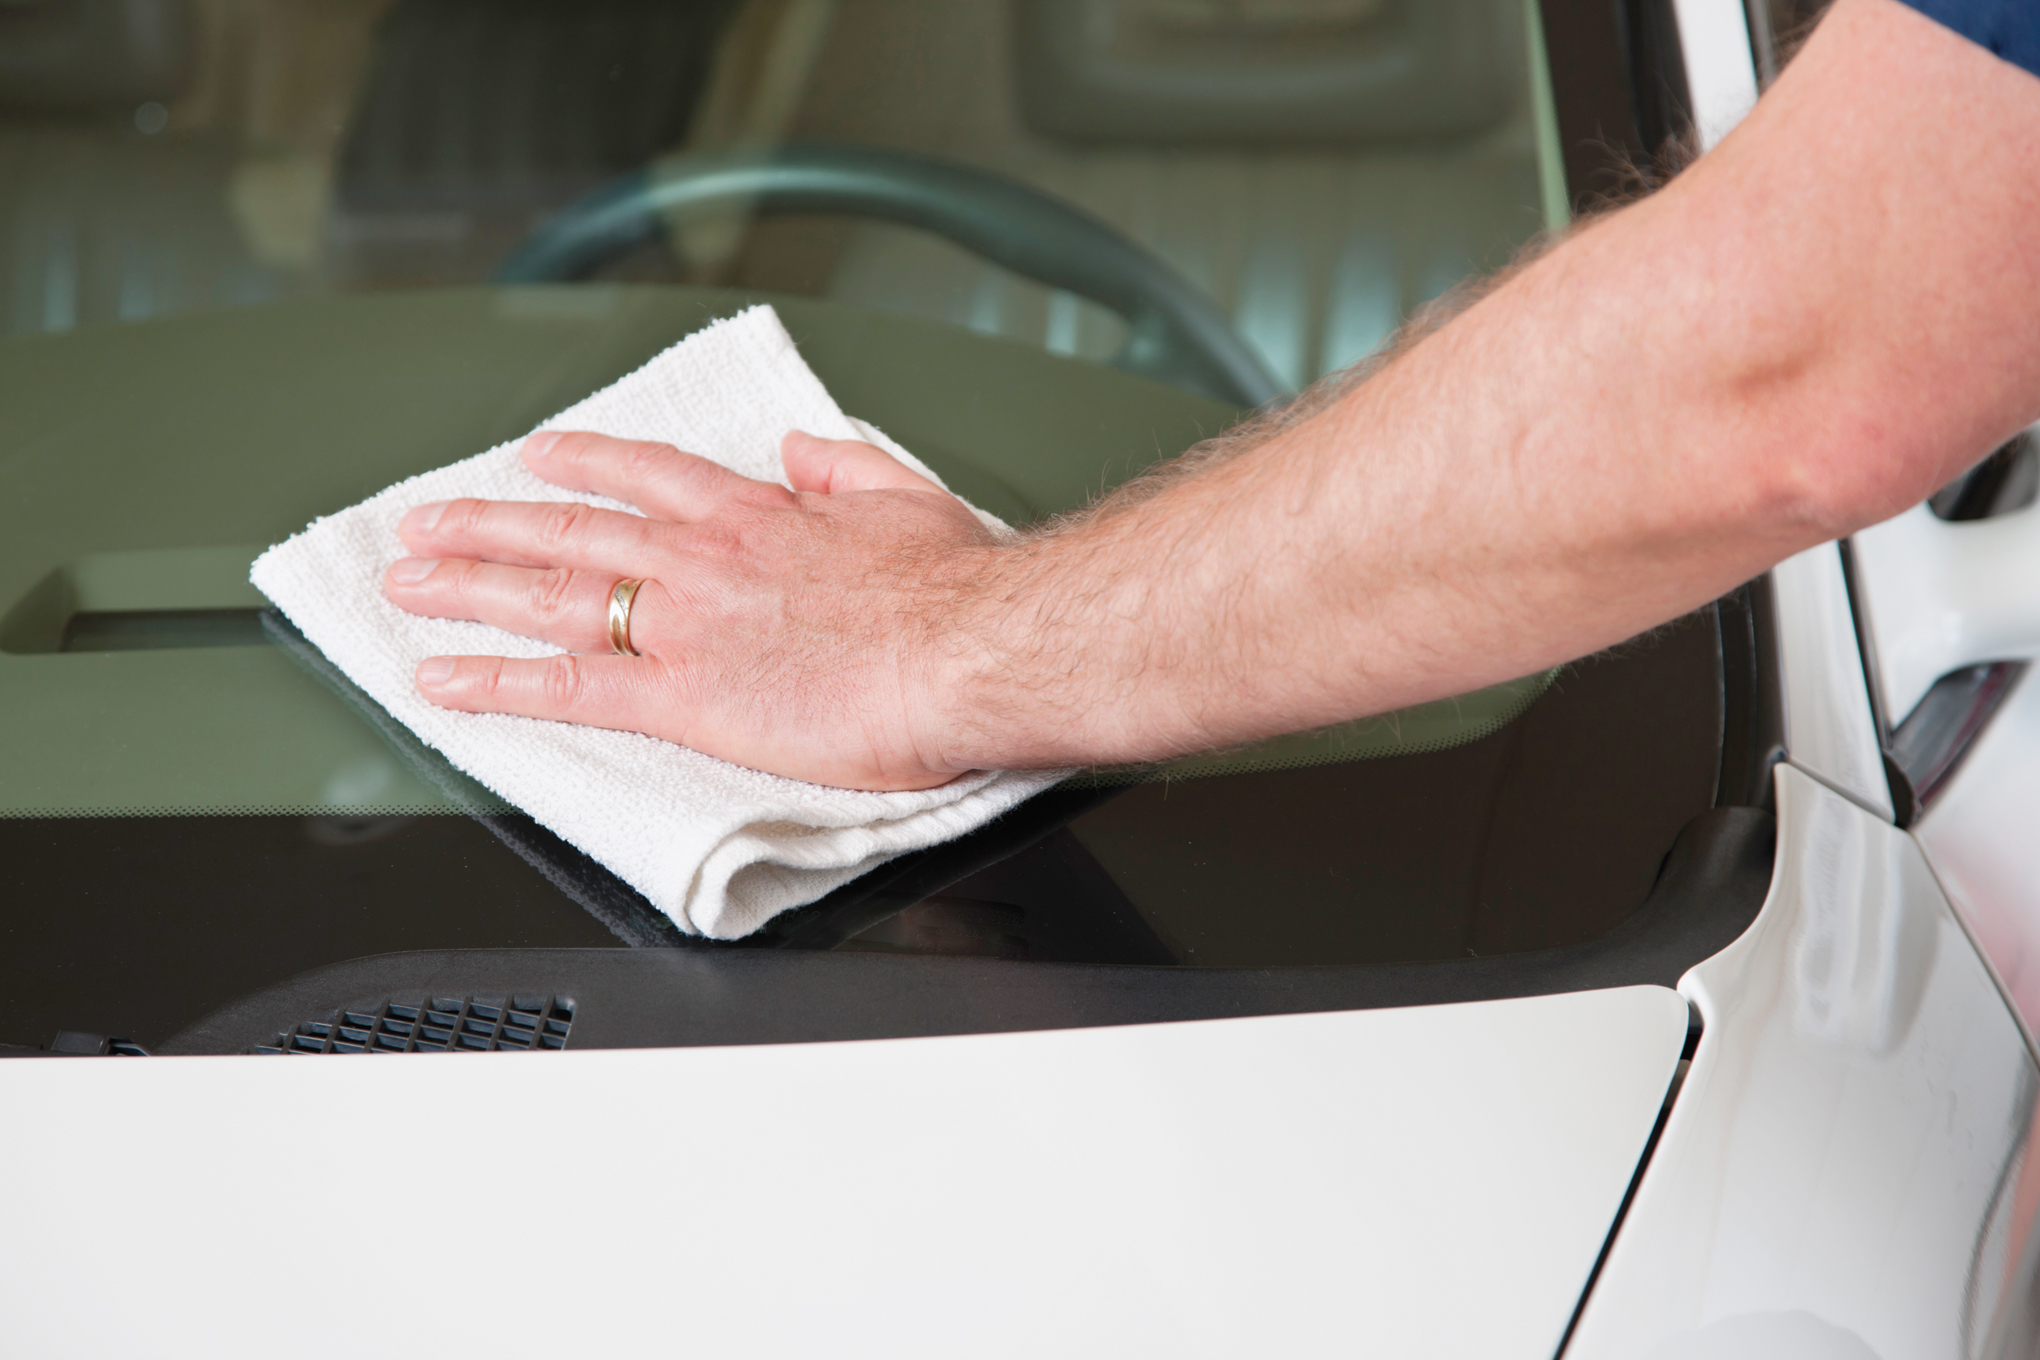 Paradise car wash in eagan mn coupons to saveon auto paradise car wash coupons solutioingenieria Image collections